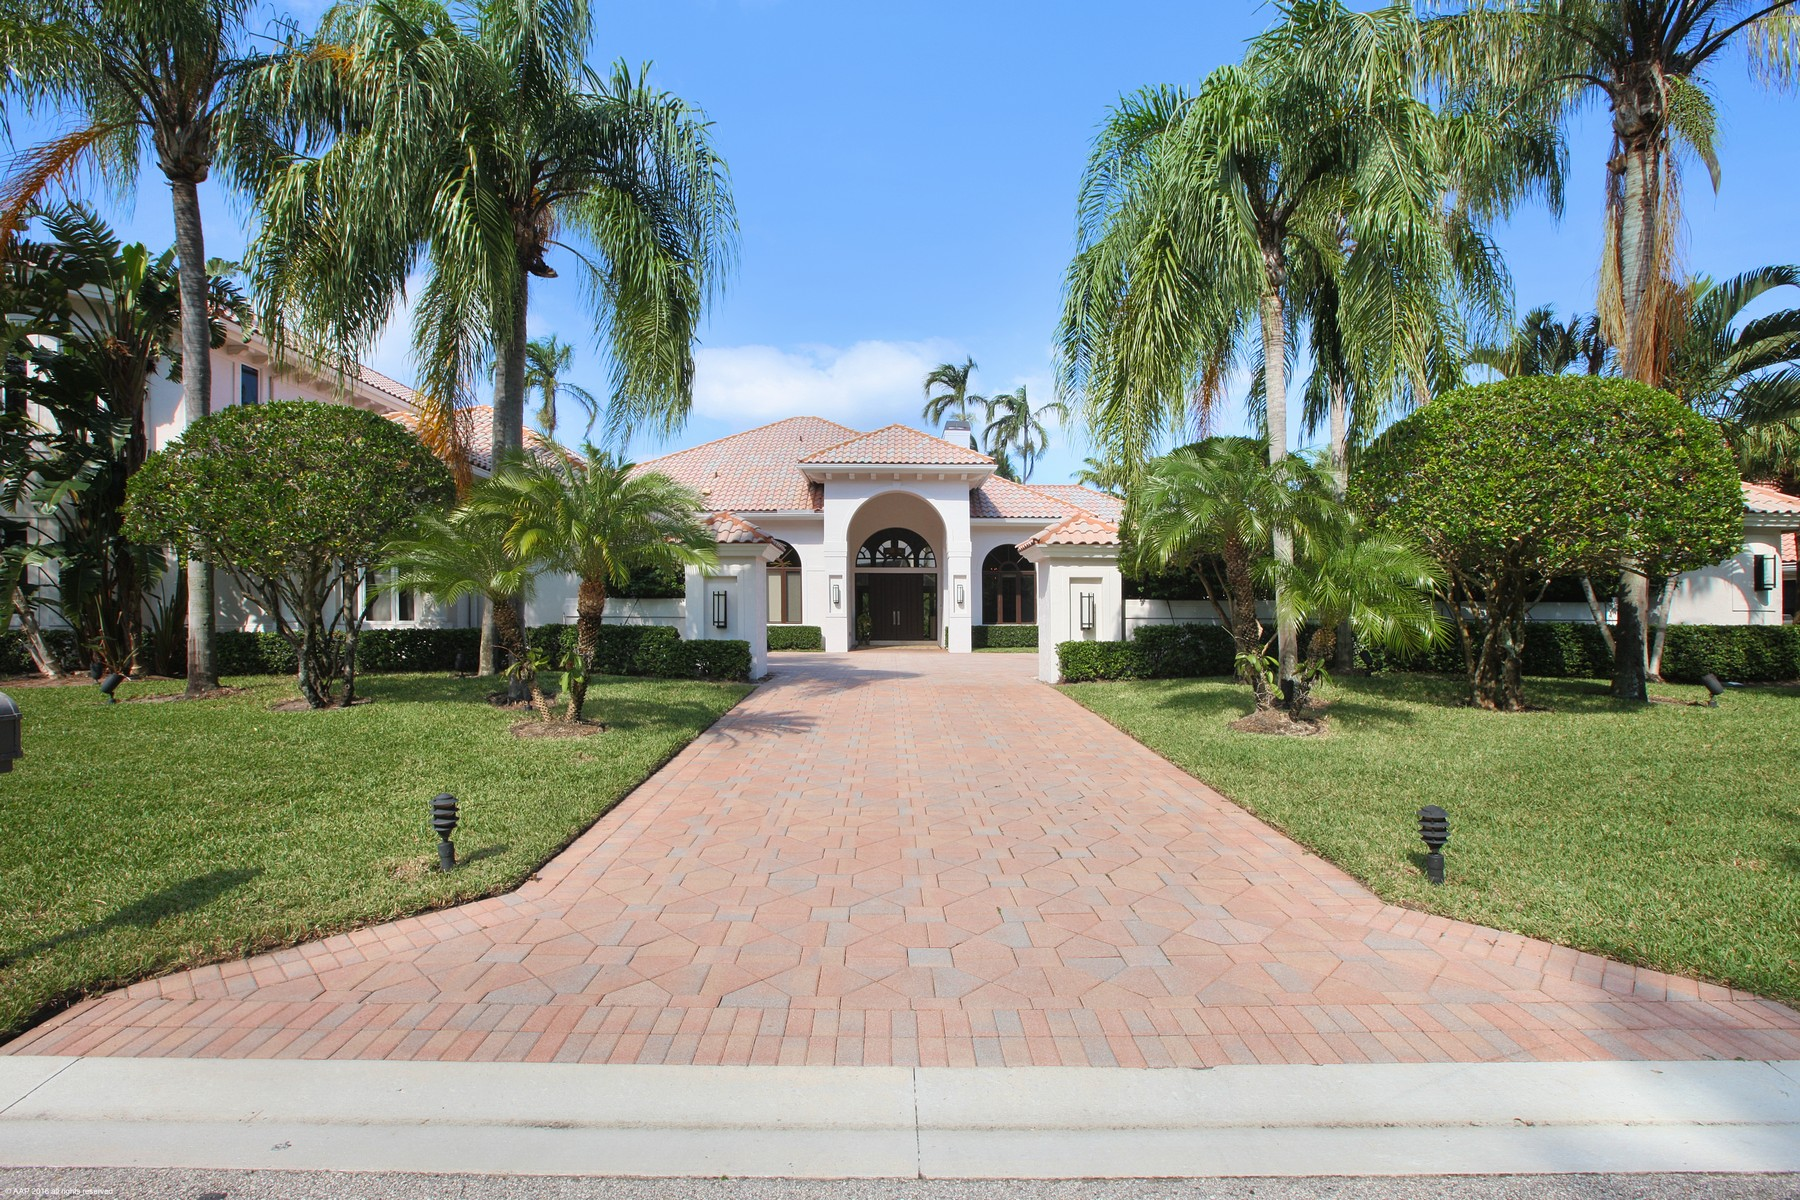 Single Family Home for Sale at 2763 Calais Drive at Frenchman's Creek Palm Beach Gardens, Florida 33410 United States